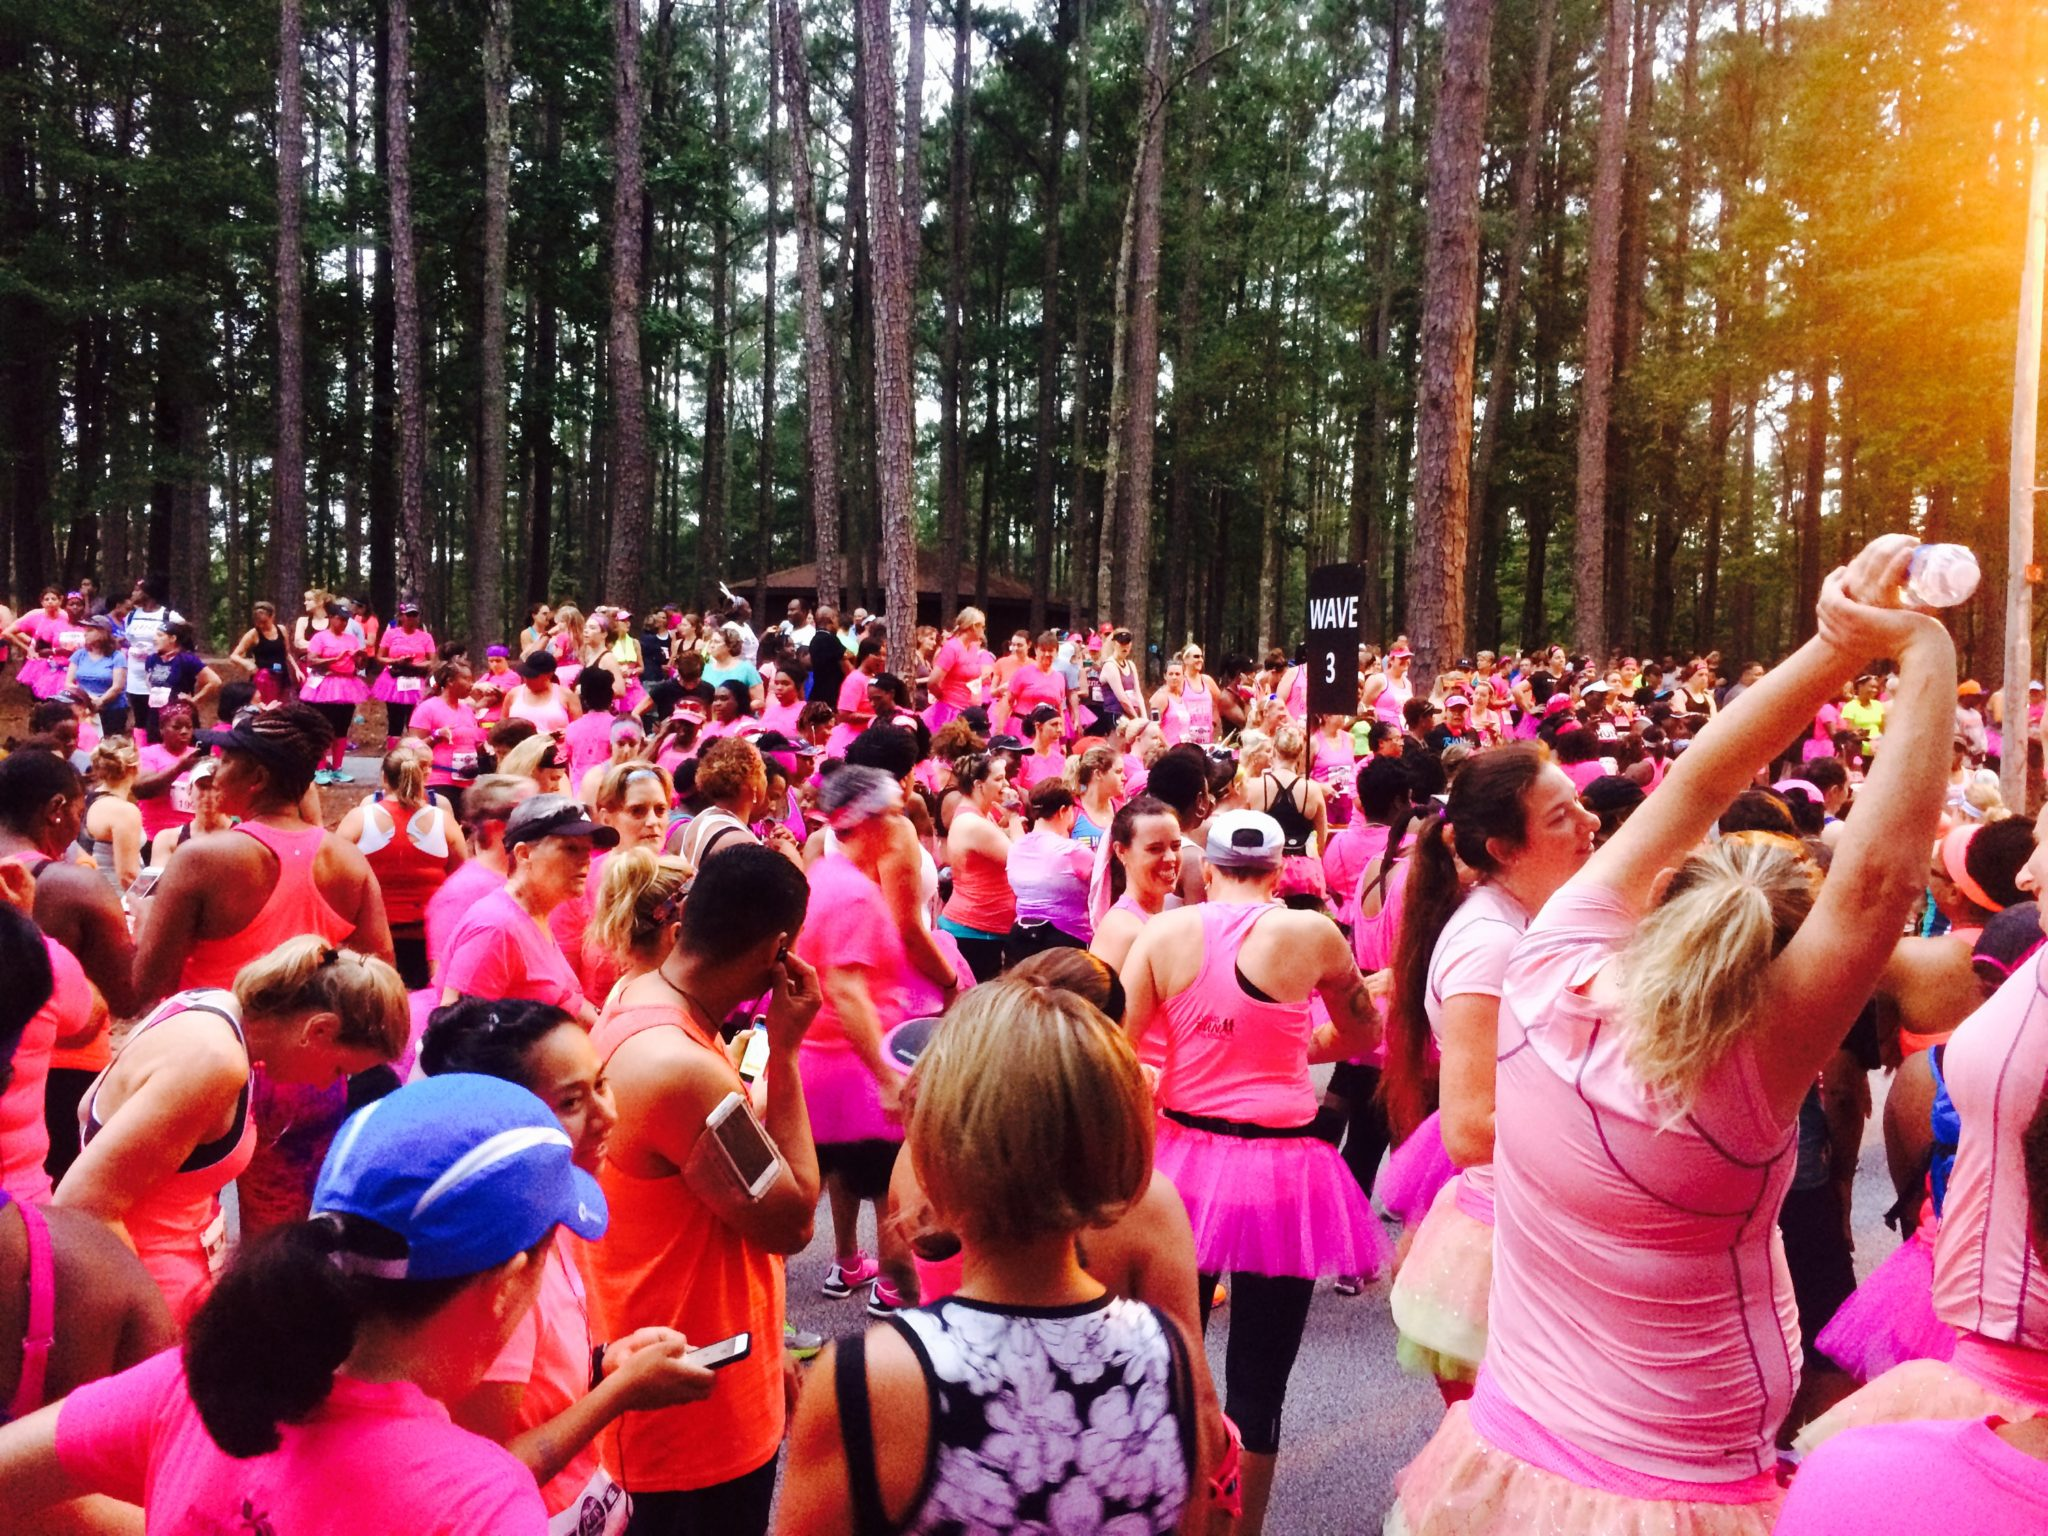 The starting line waiting area was a sea of pink!